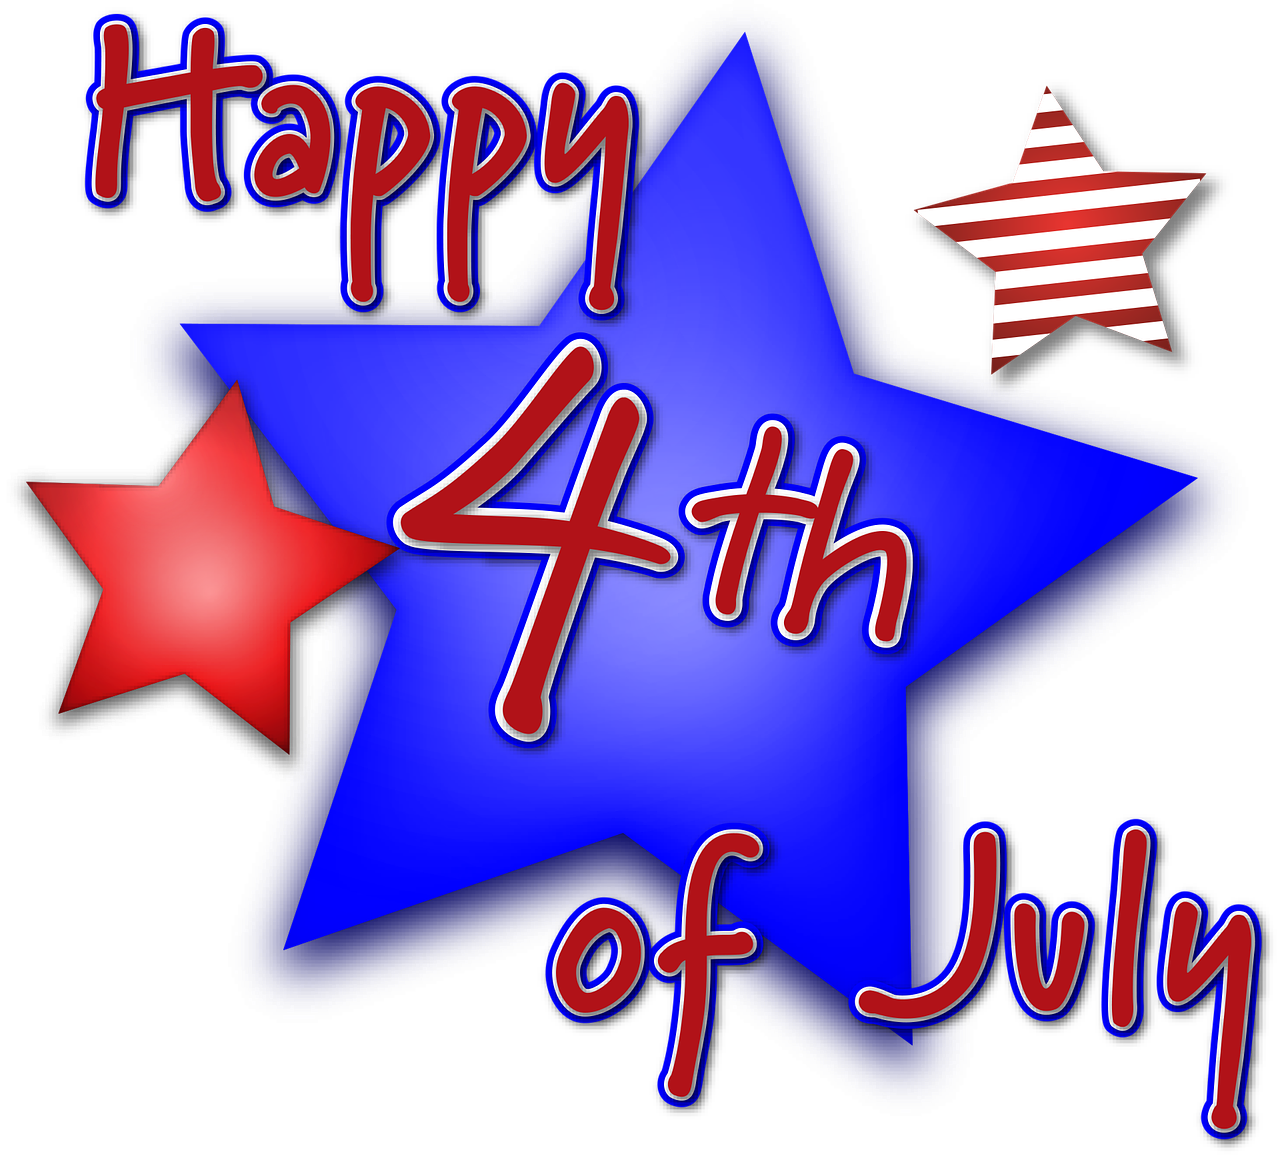 Xldent hours will be. July clipart july holiday